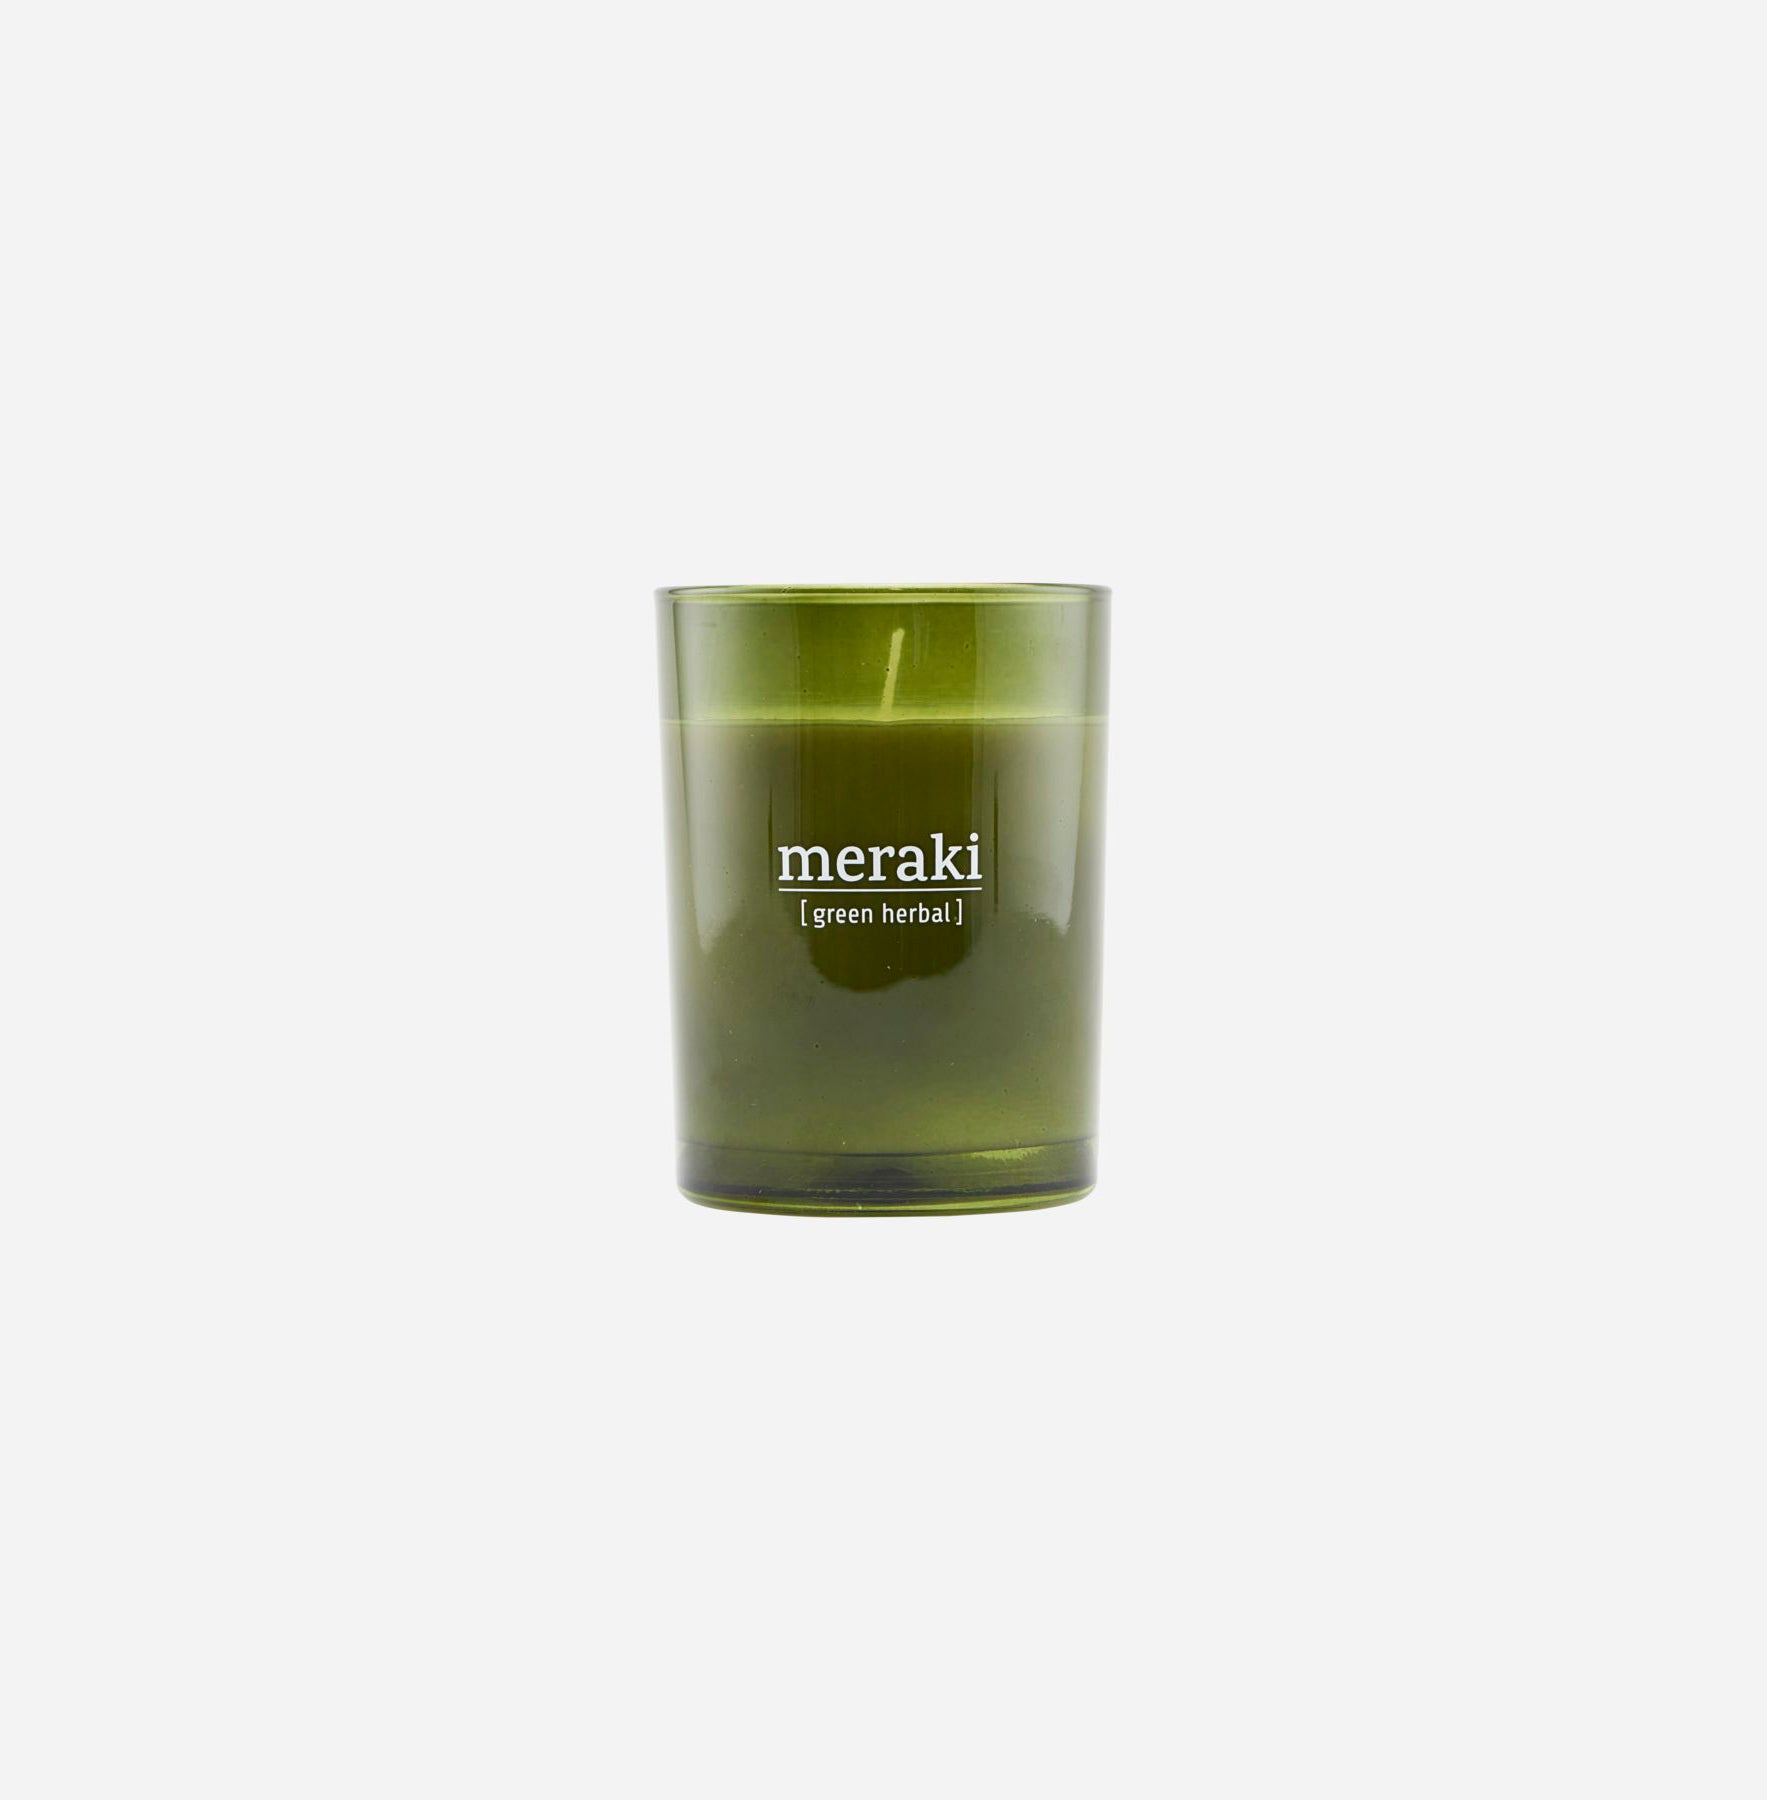 Meraki Duftlys, Green herbal